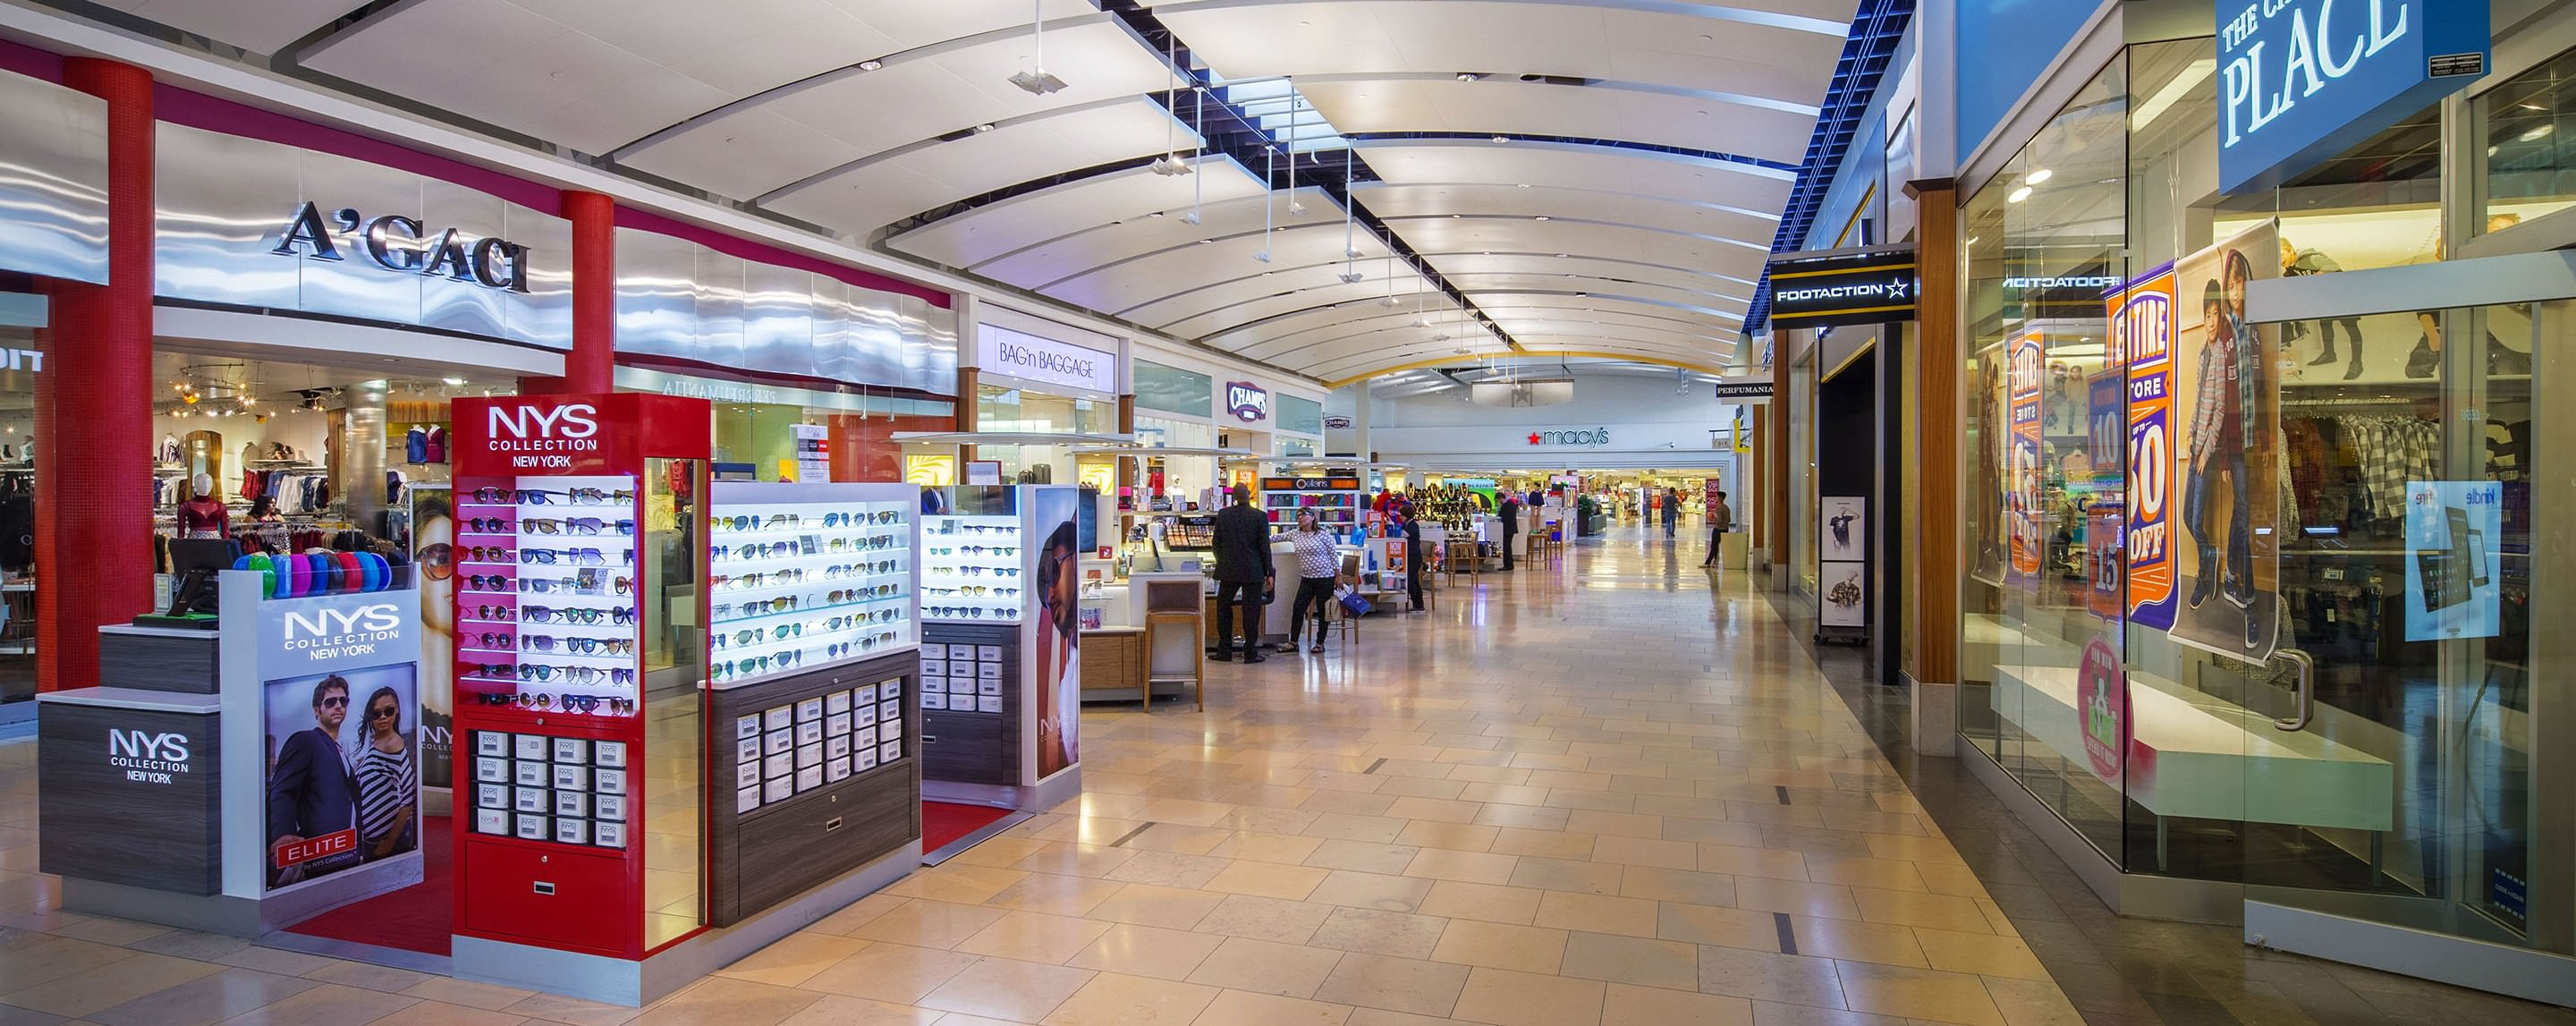 North star mall is one of the best malls San Antonio has to offer. They have everything you could possibly need in a mall from your common stores to your luxurious ones. They have a good selection of foods at the food court along with restaurants like kona grill, cheesecake factory and a new urban bricks/5().